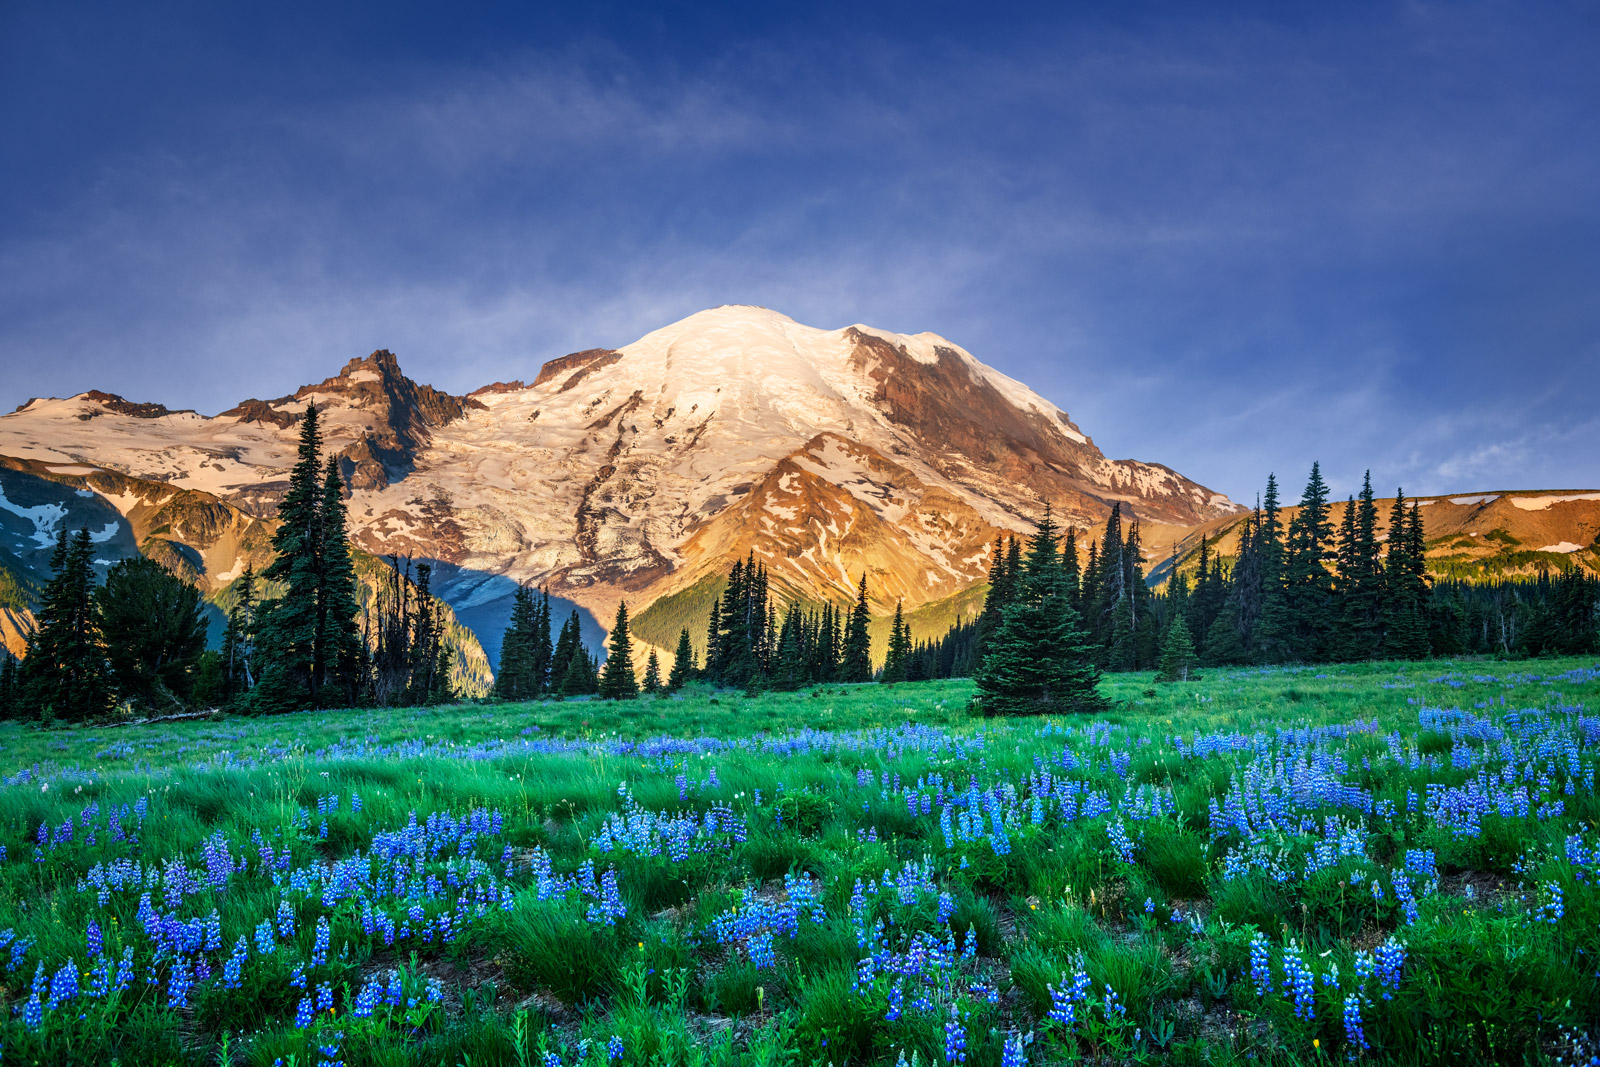 A Limited Edition, Fine Art photograph of purple lupine flowers blooming in the field in front of Mount Rainier in Washington...